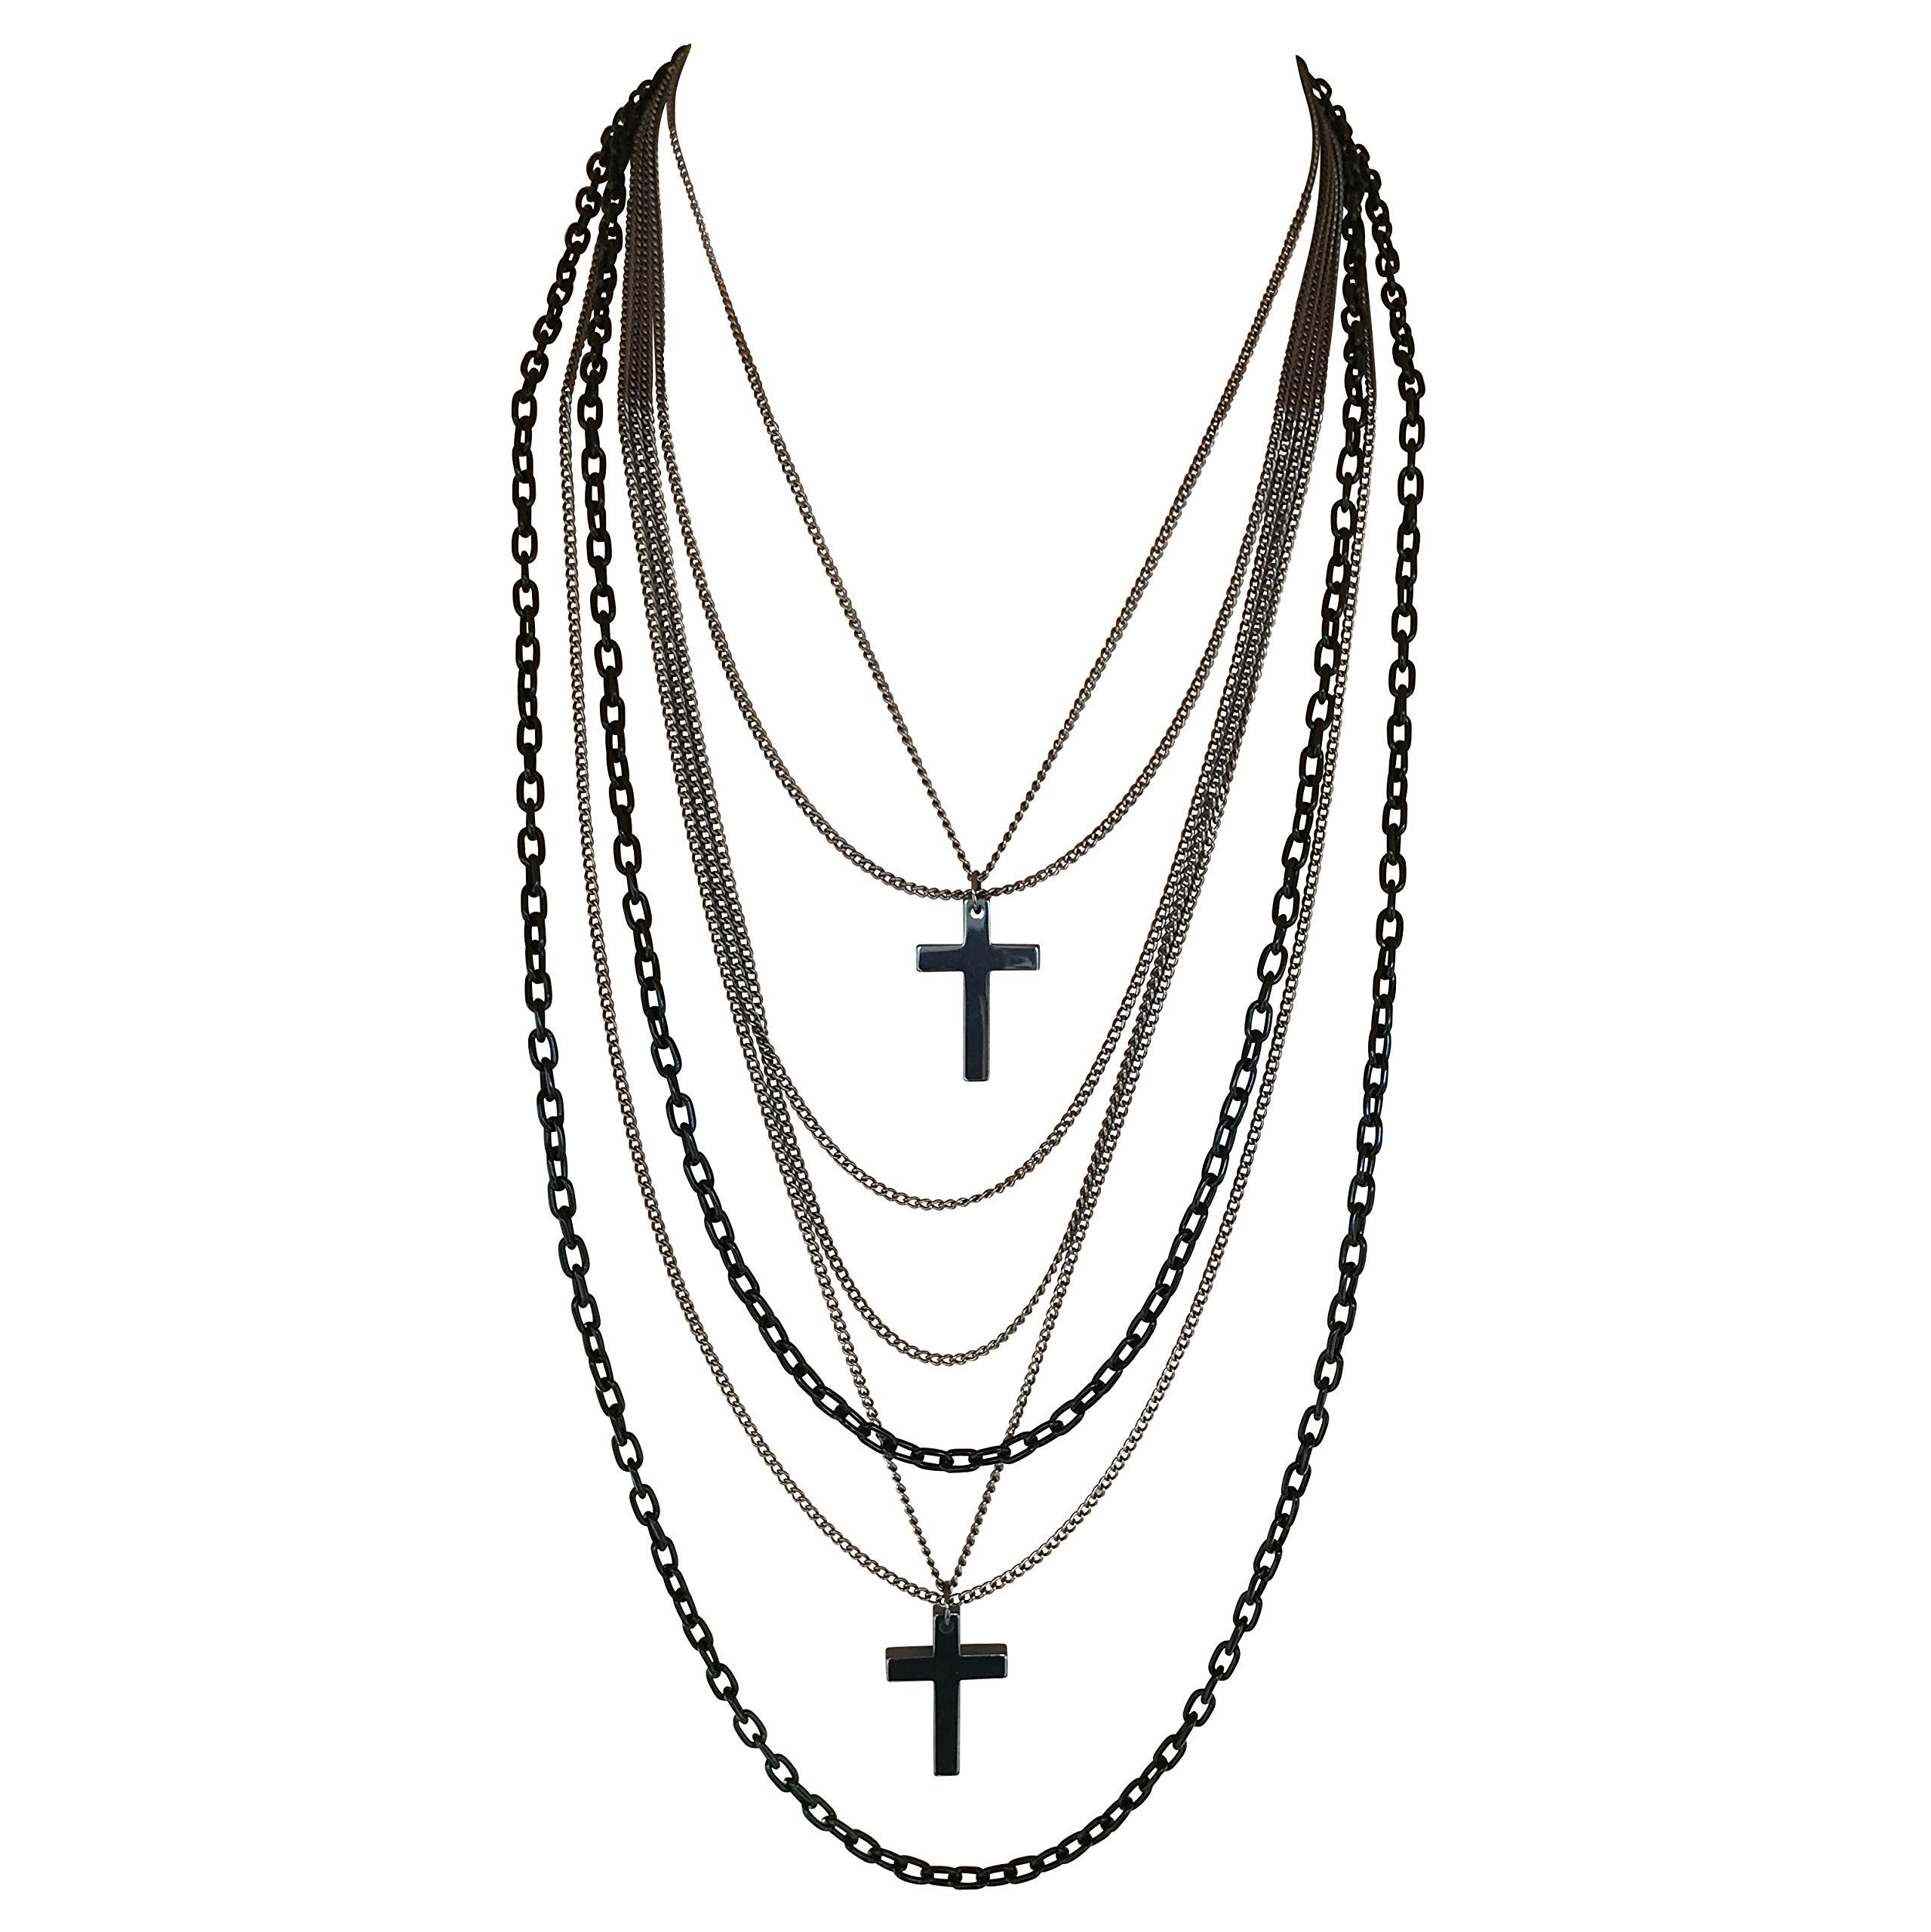 Multilayer Black and Gunmetal Chains and Crosses 80's Gothic Retro Long Fashion Necklace by DragonWeave